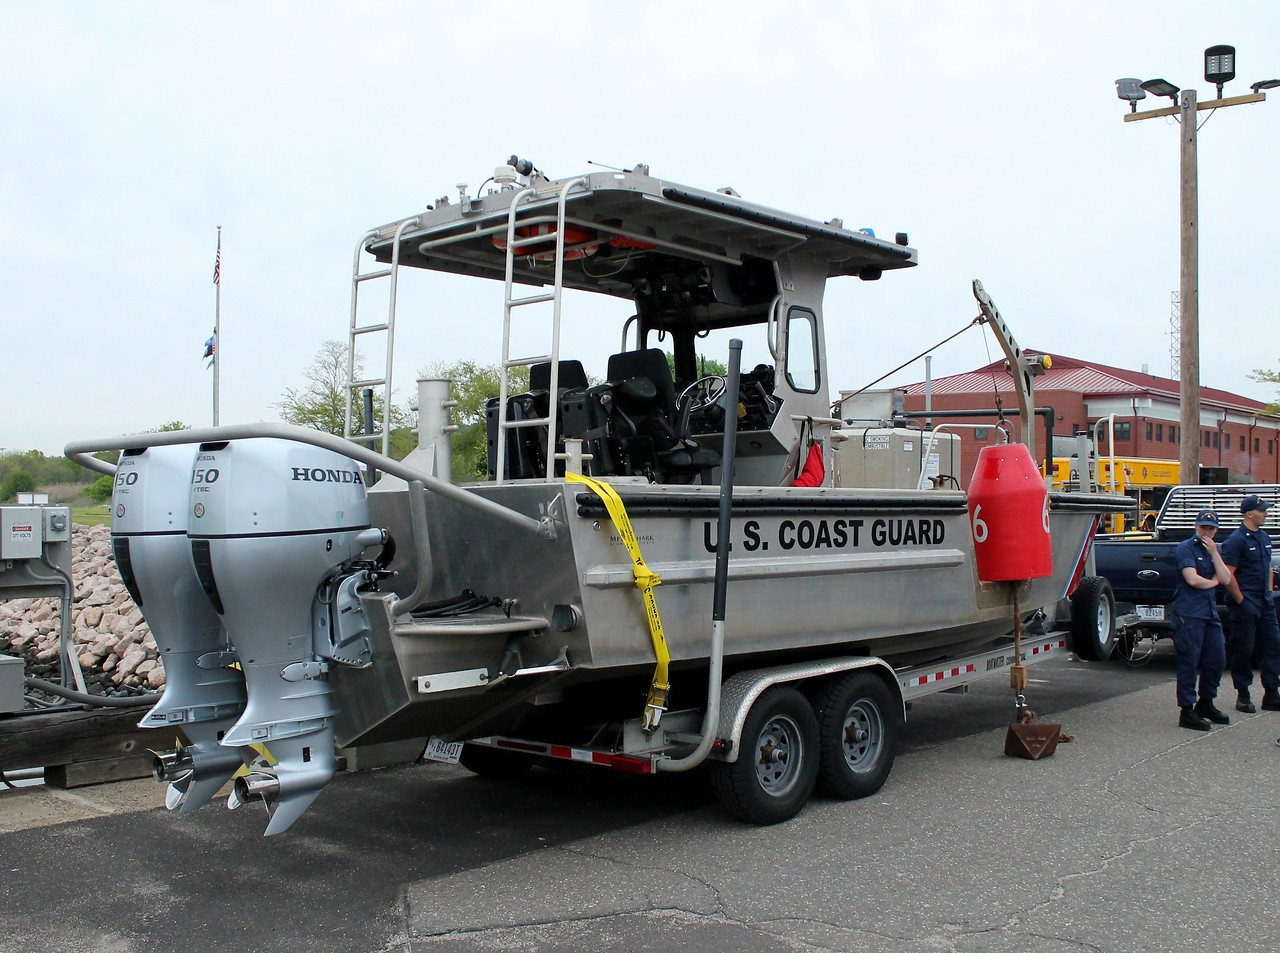 26' Aid to Navigation Boat 26161